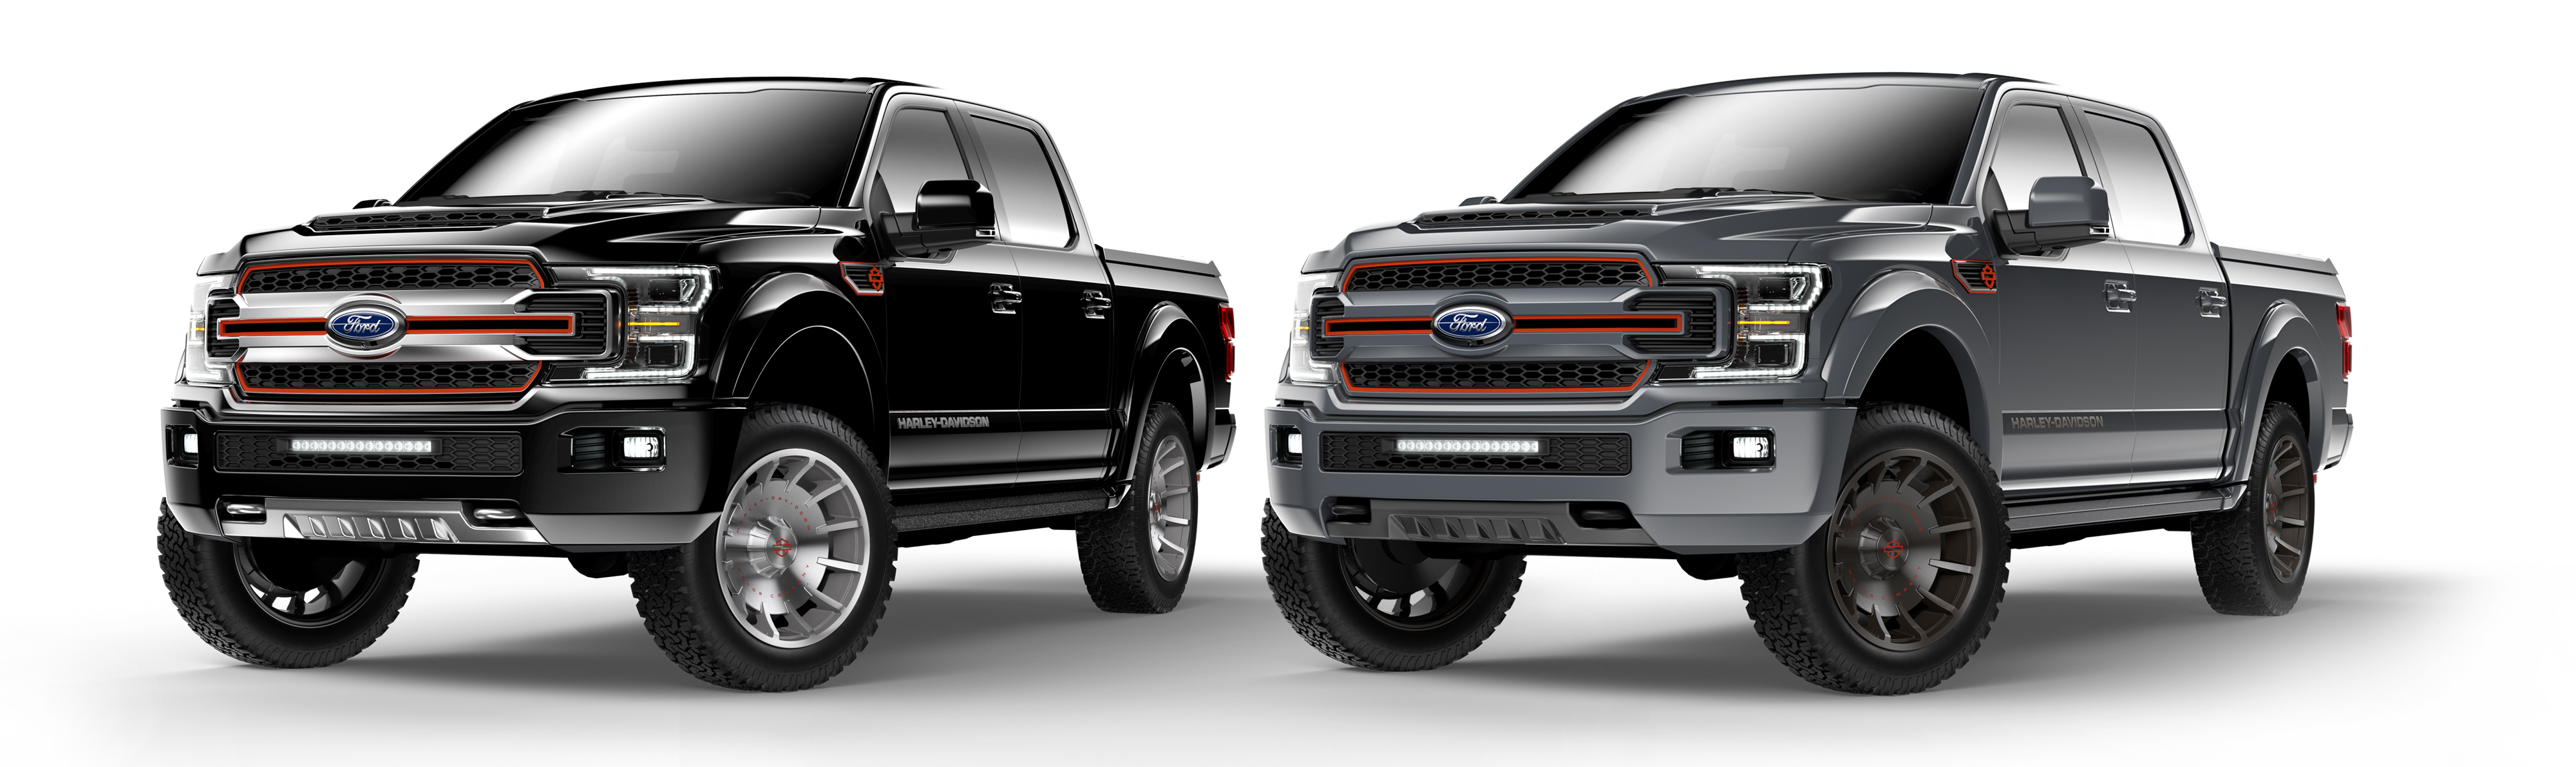 Harley Davidson And Tuscany Motor Co Announced Today That They Ve Built An All New Custom 2019 Ford F 150 Pickup